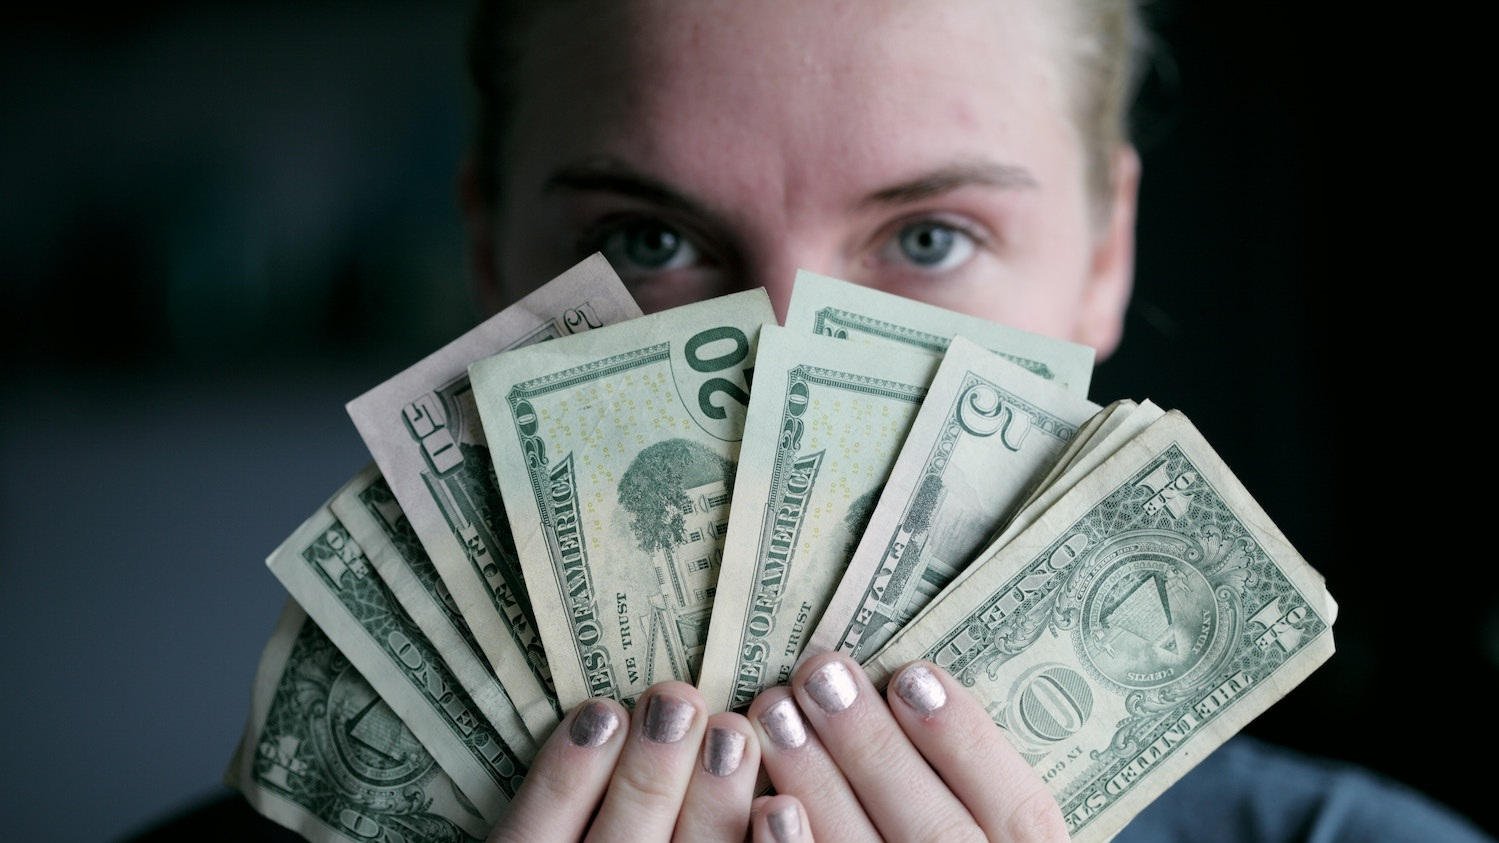 A person holding cash in front of their face